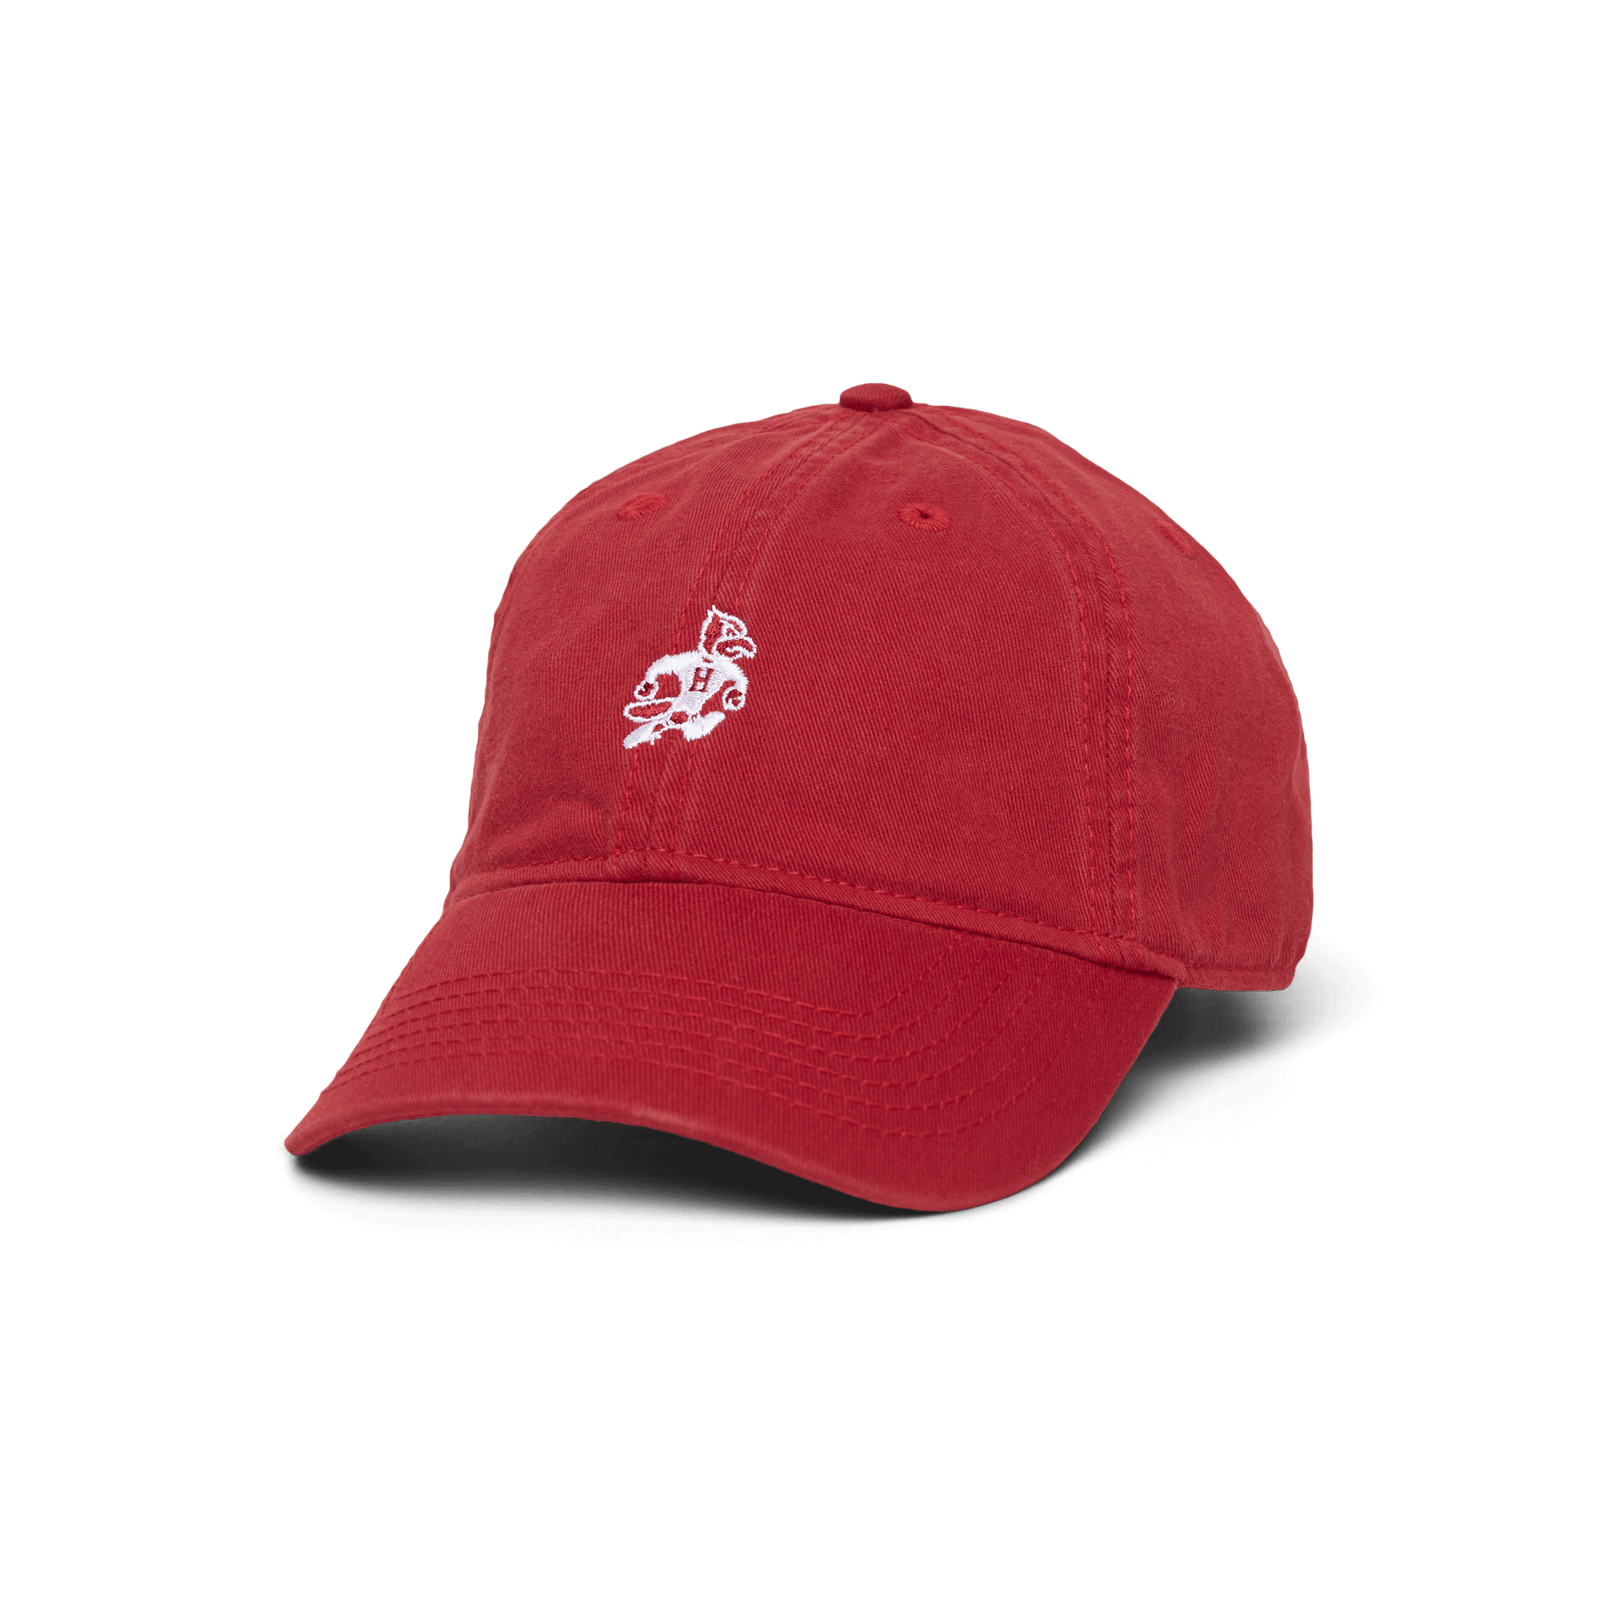 HOMAGE Cardinal Dad Hat